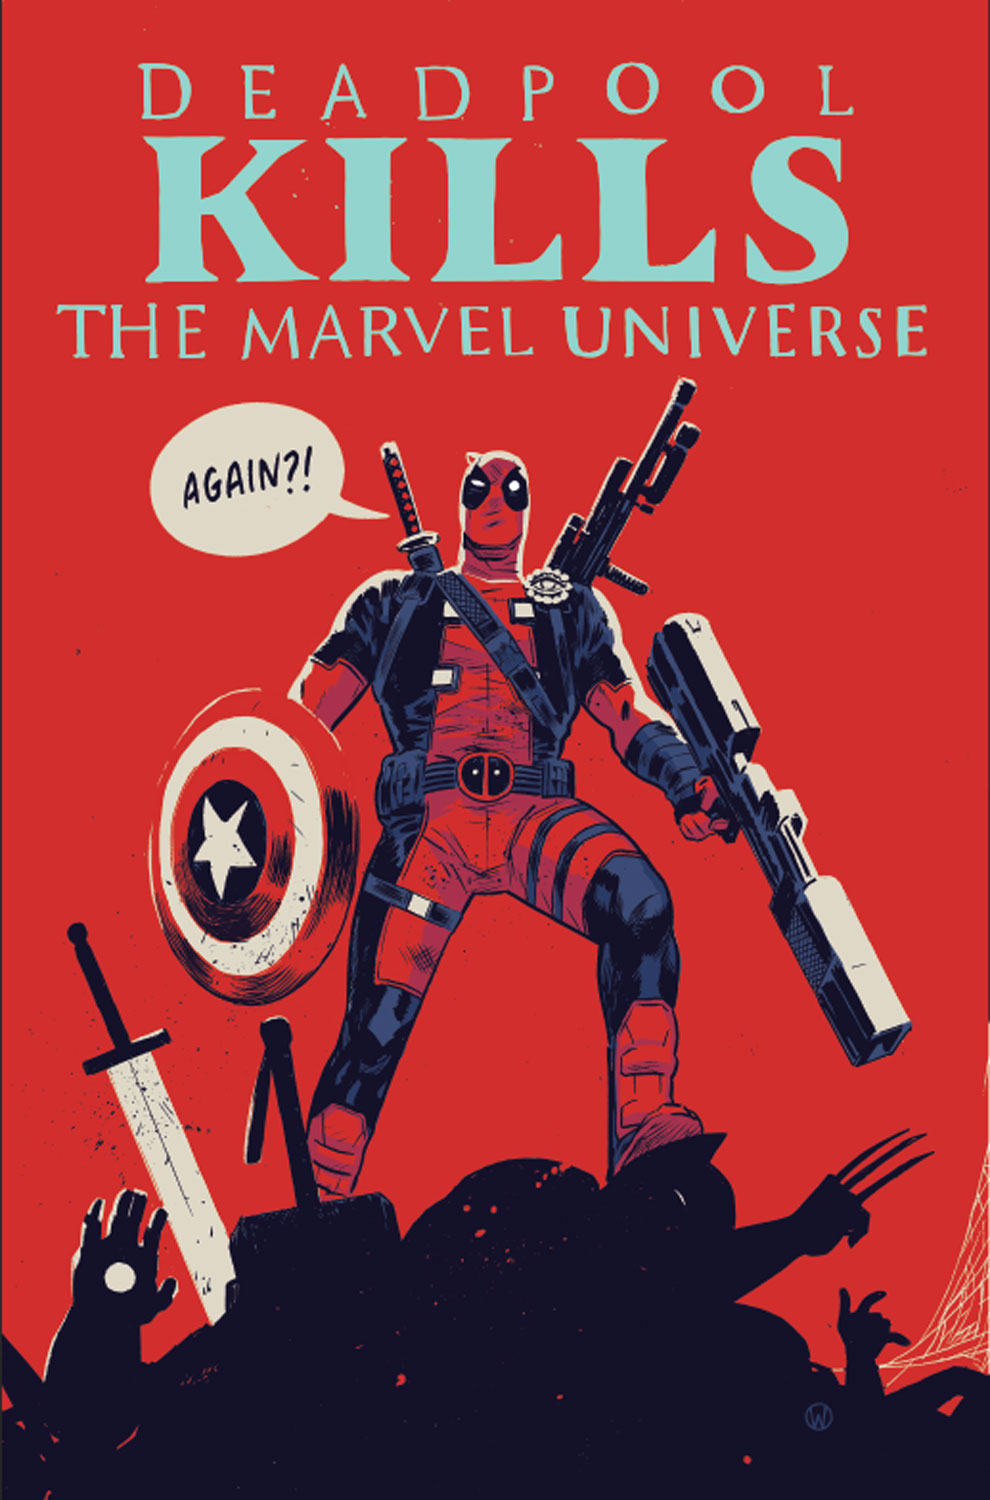 Deadpool_Kills_The_Marvel_Universe_Again_Walsh_Cvr